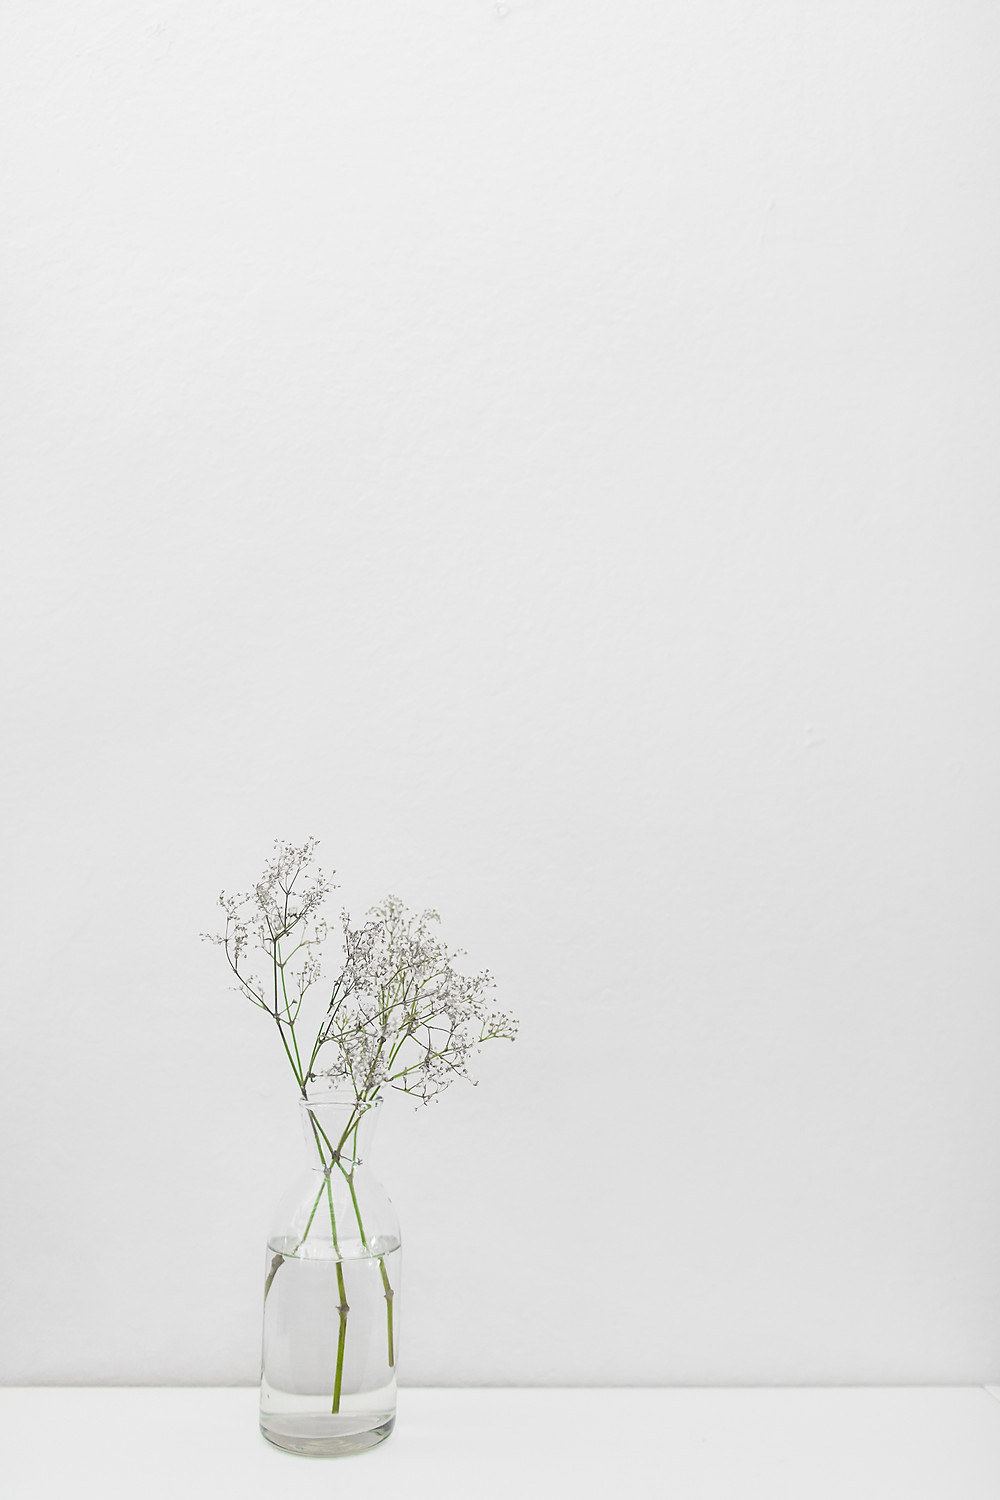 Minimalism, The Minimalist, Minimal, Empty Space, Beauty in Nothingness, Nothing, White Walls, Space, Emptiness, Minimalist Art, Art, Beauty, Plant, Growth, Empty Canvas, Bottle, Plant Pot, Minimalist Plant